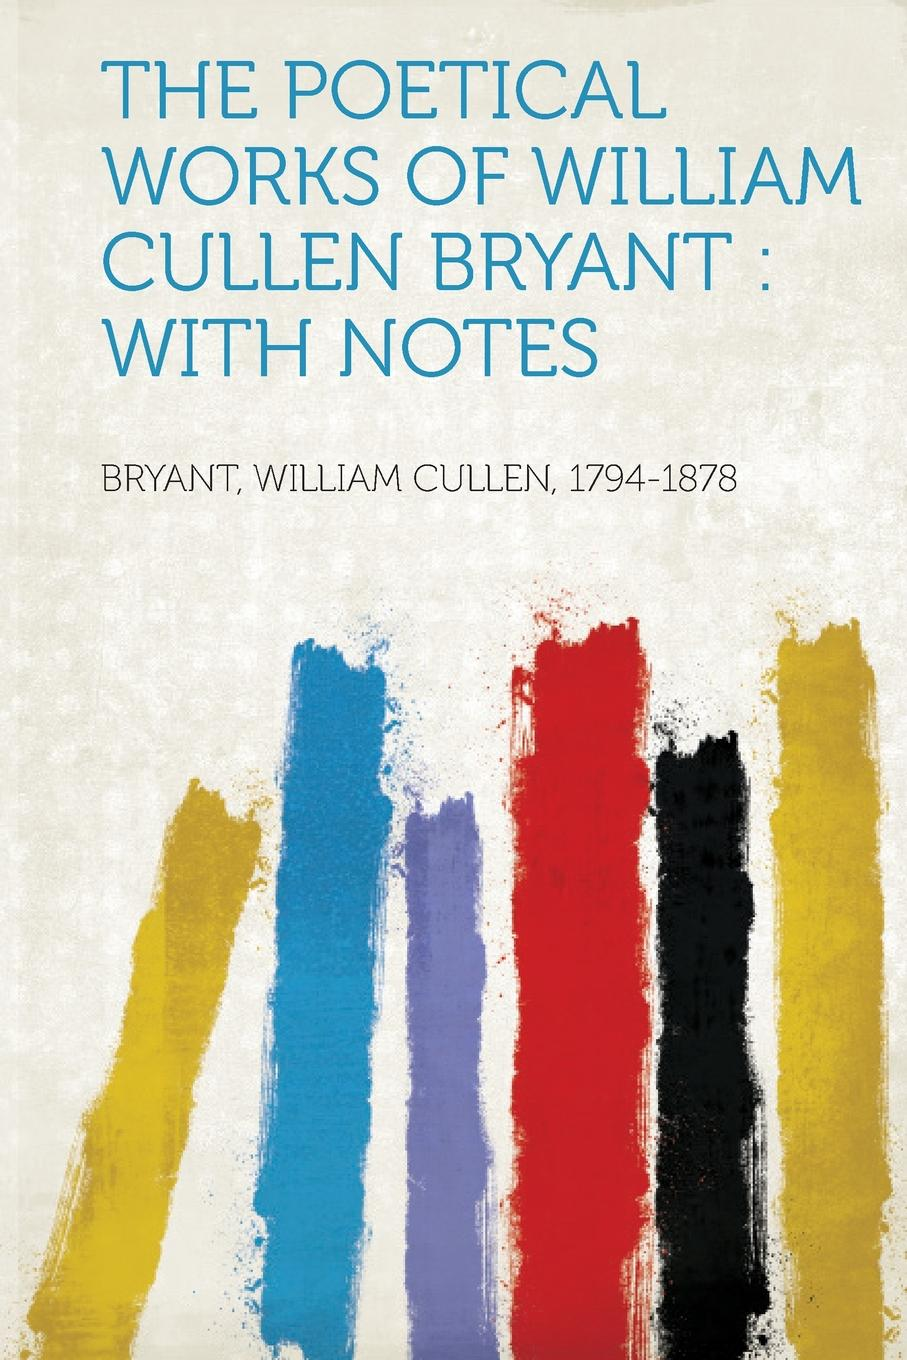 Bryant William Cullen 1794-1878 The Poetical Works of William Cullen Bryant. With Notes william cullen bryant poetical works of william cullen bryant